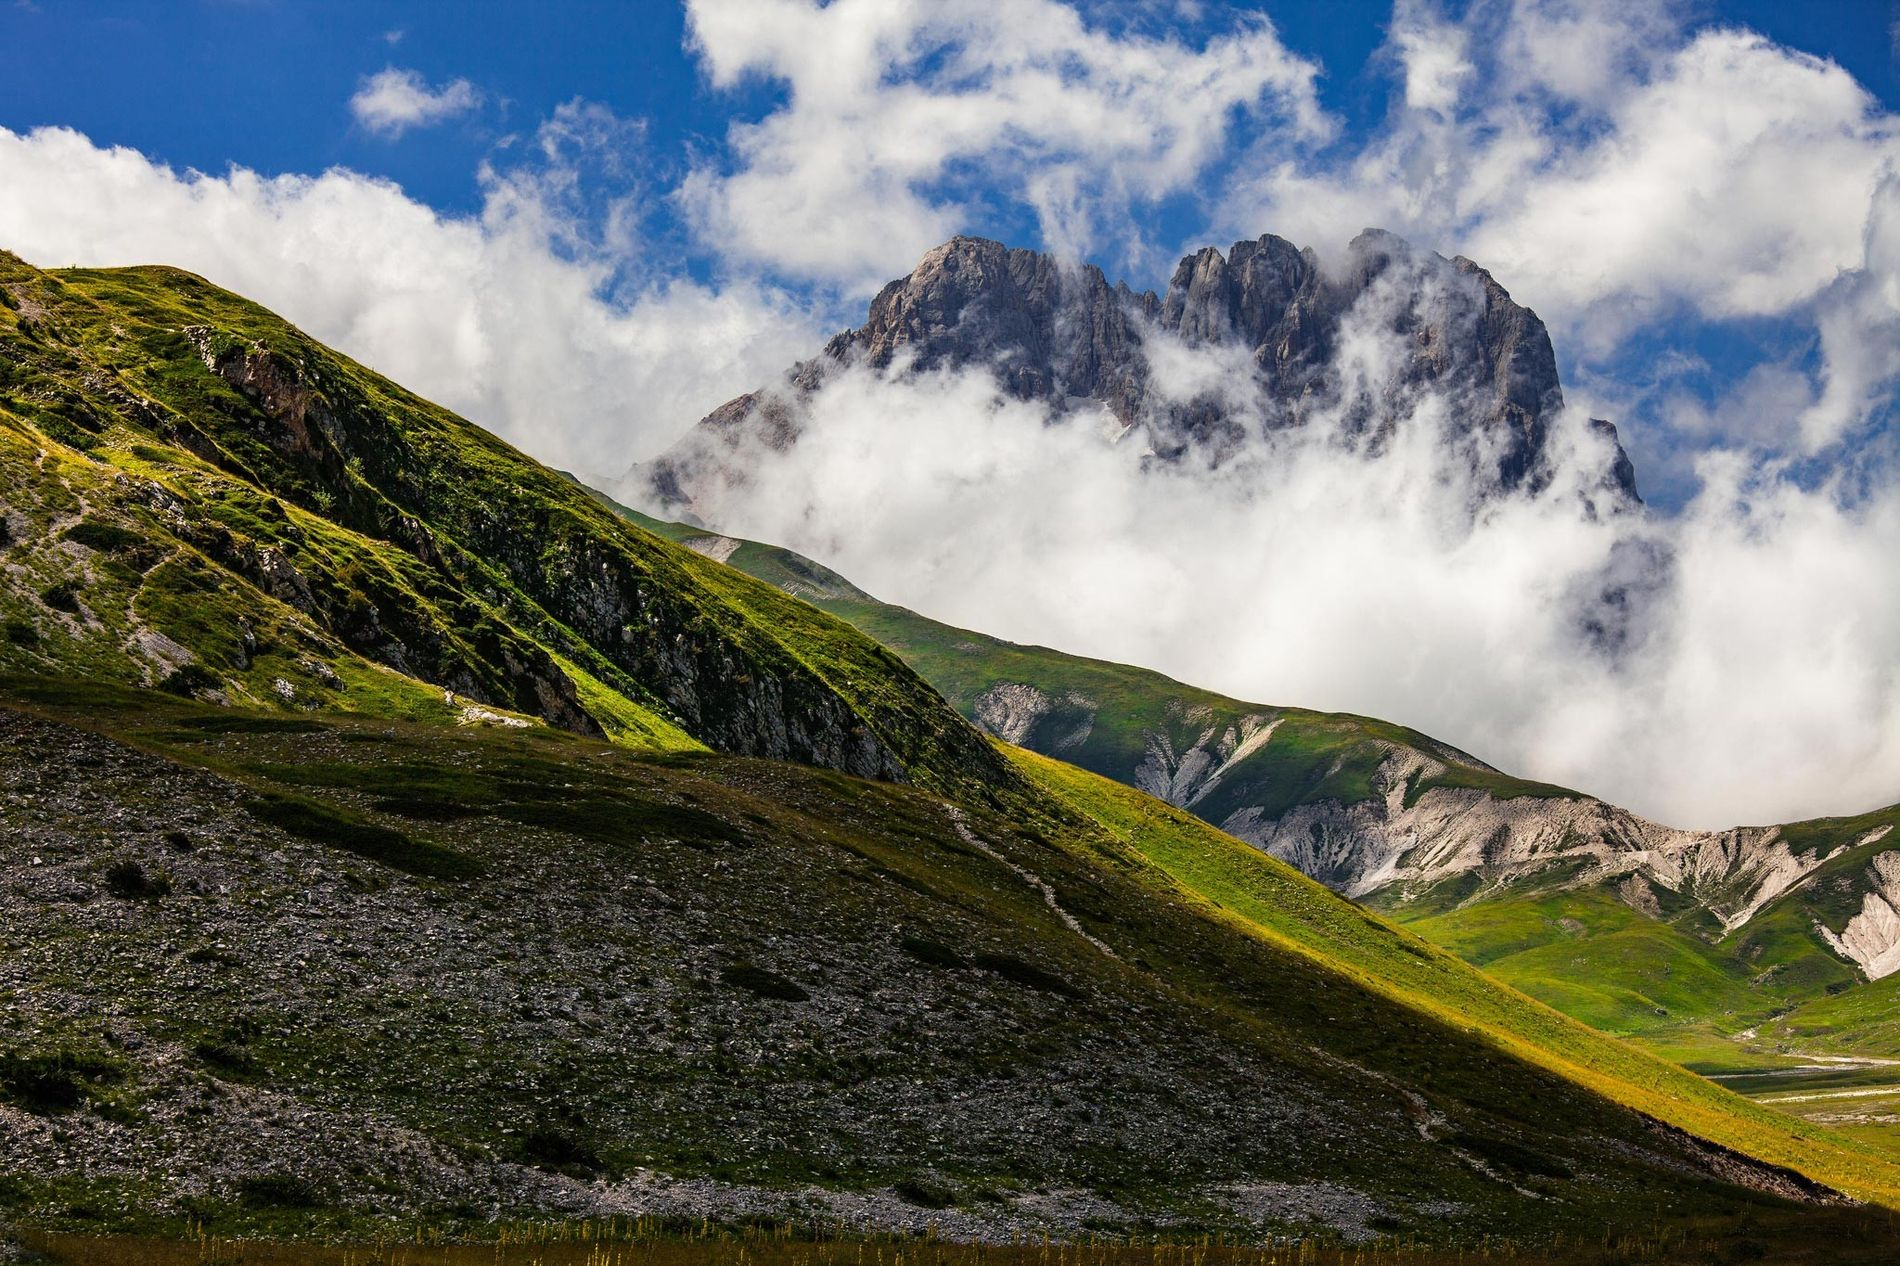 The Corno Grande, the highest peak in the Apennine Mountains, stands out among the clouds. The ...